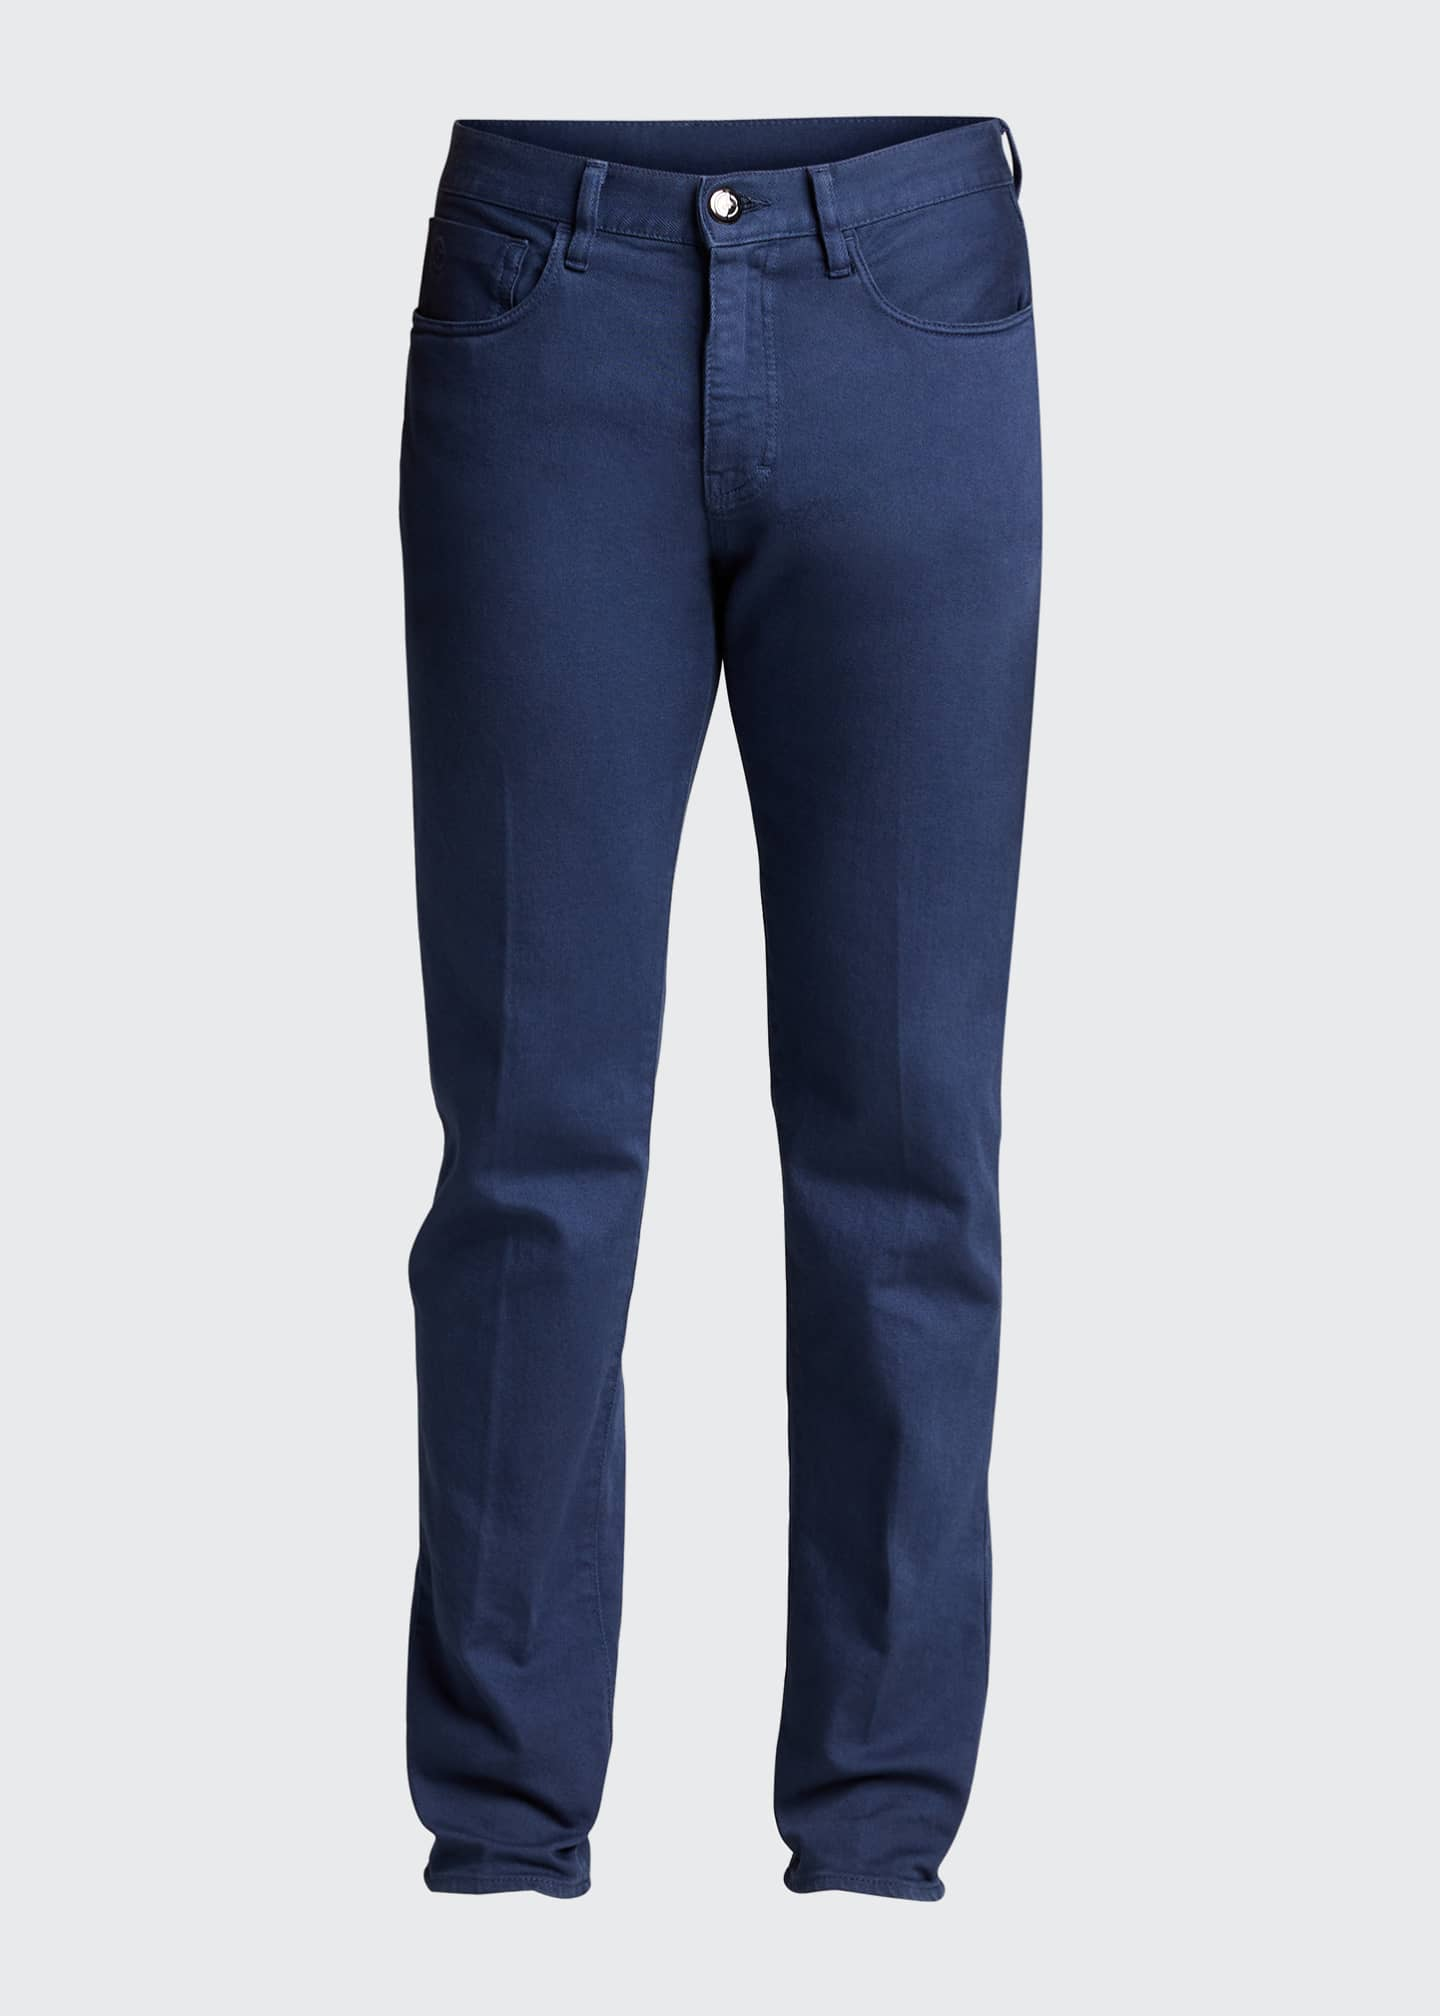 Image 5 of 5: Men's Relaxed Slim Five-Pocket Jeans